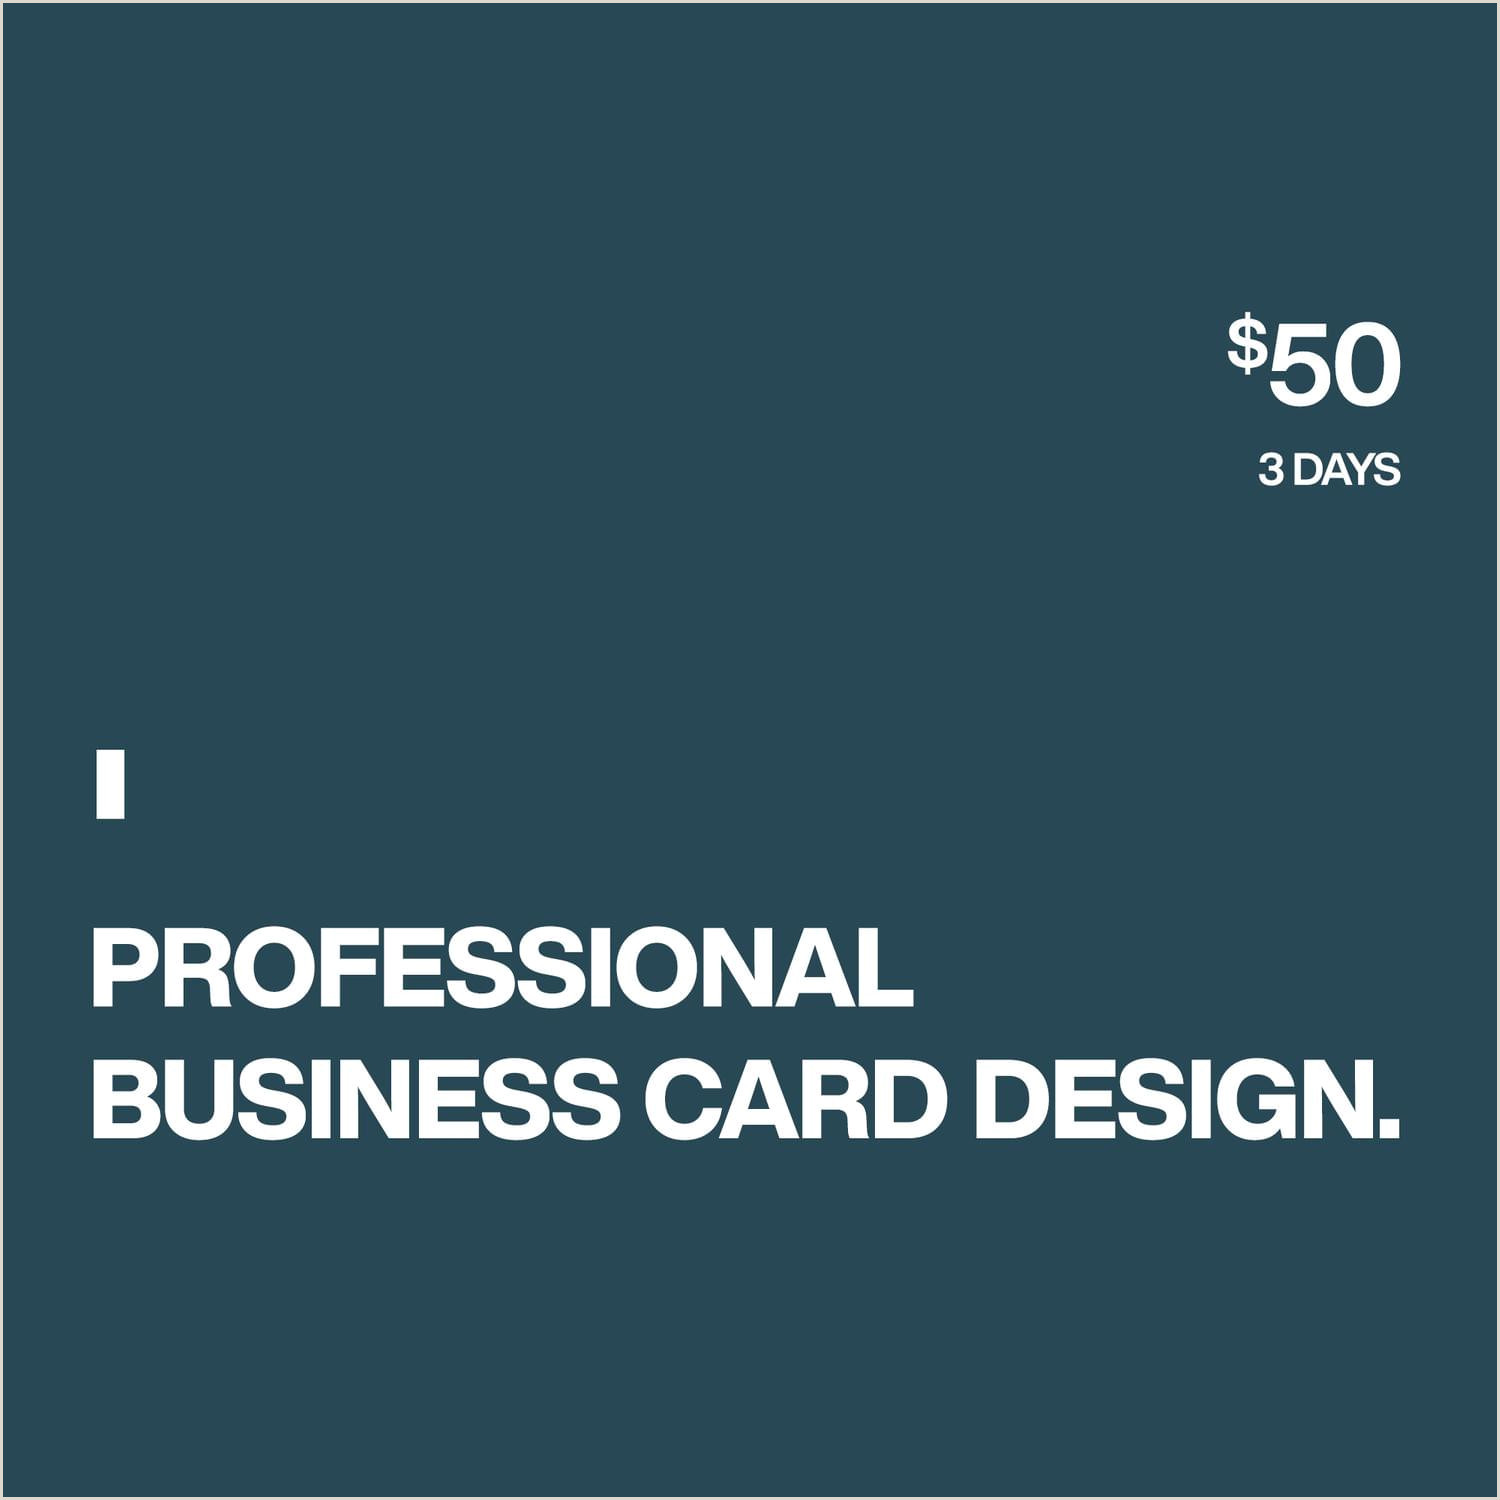 Sample Professional Business Cards Professional Business Card Design By Unicogfx On Envato Studio